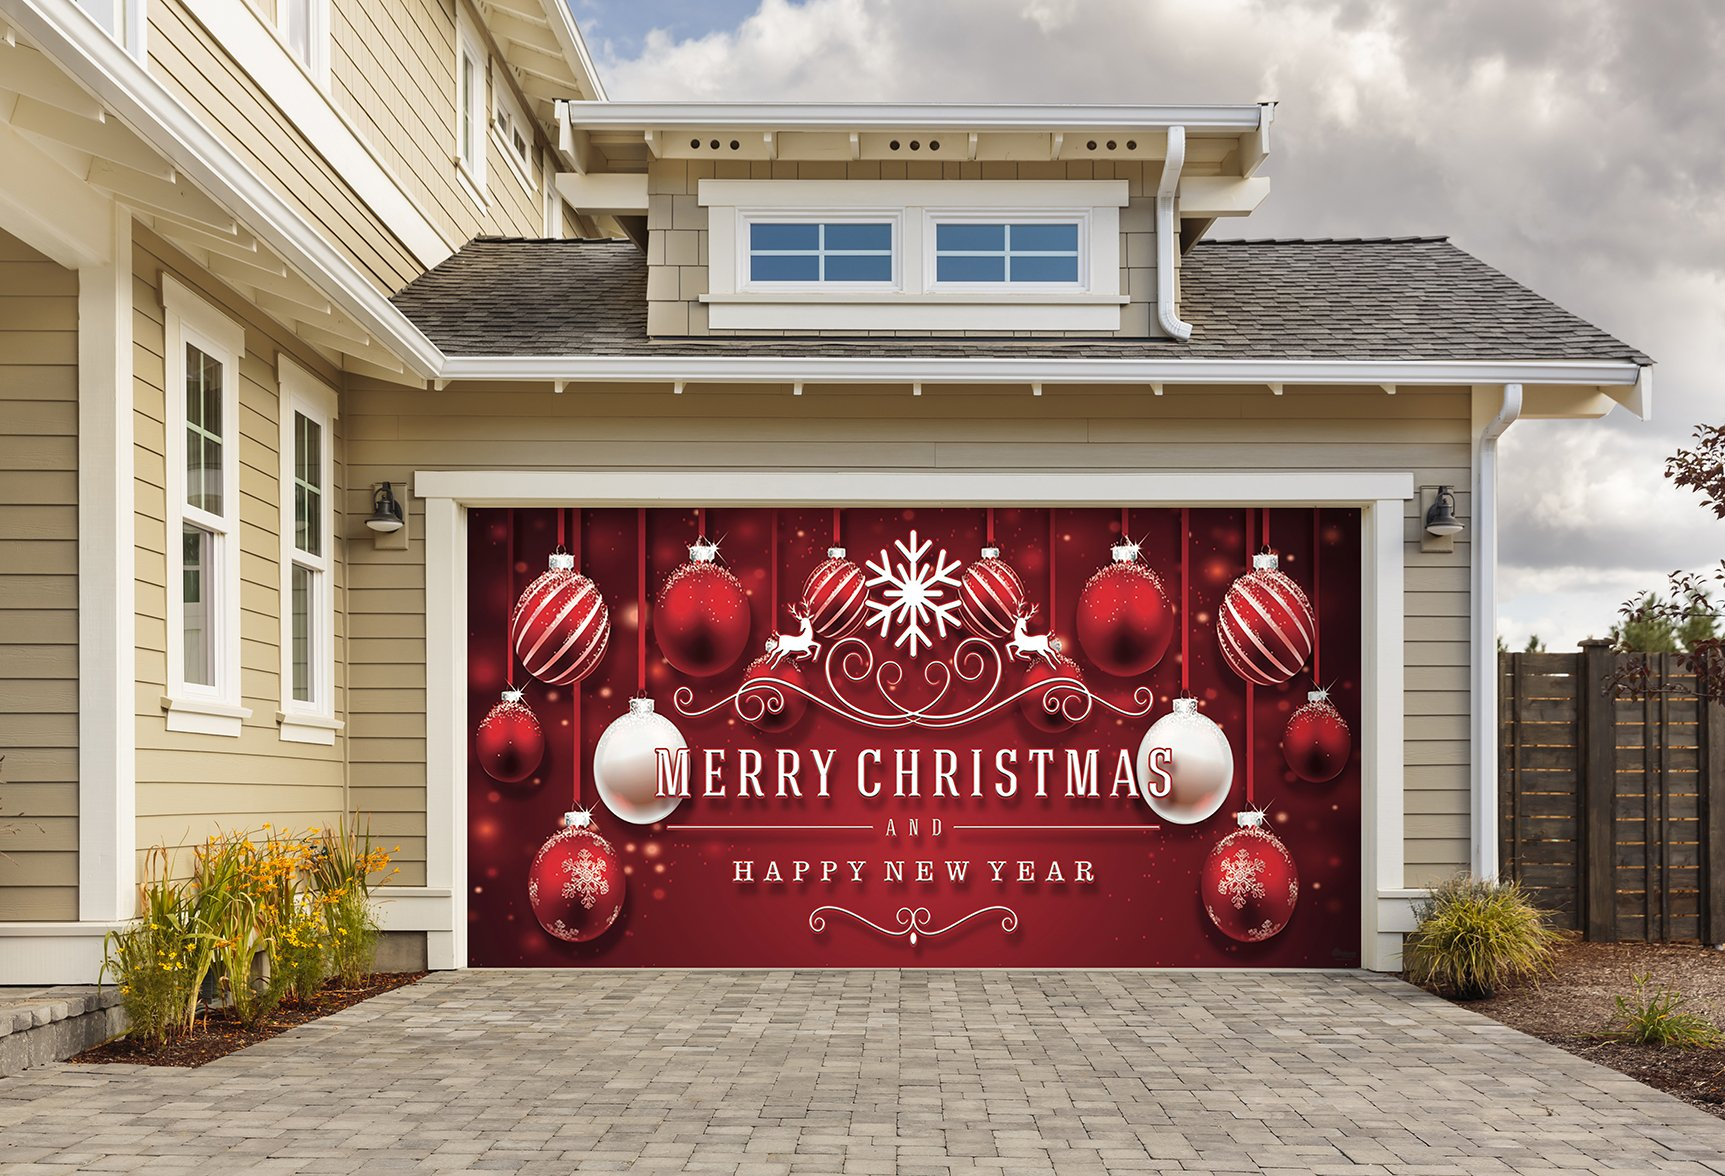 Outdoor Christmas Holiday Garage Door Banner Cover Mural Décoration 8 X16 Red Ornaments